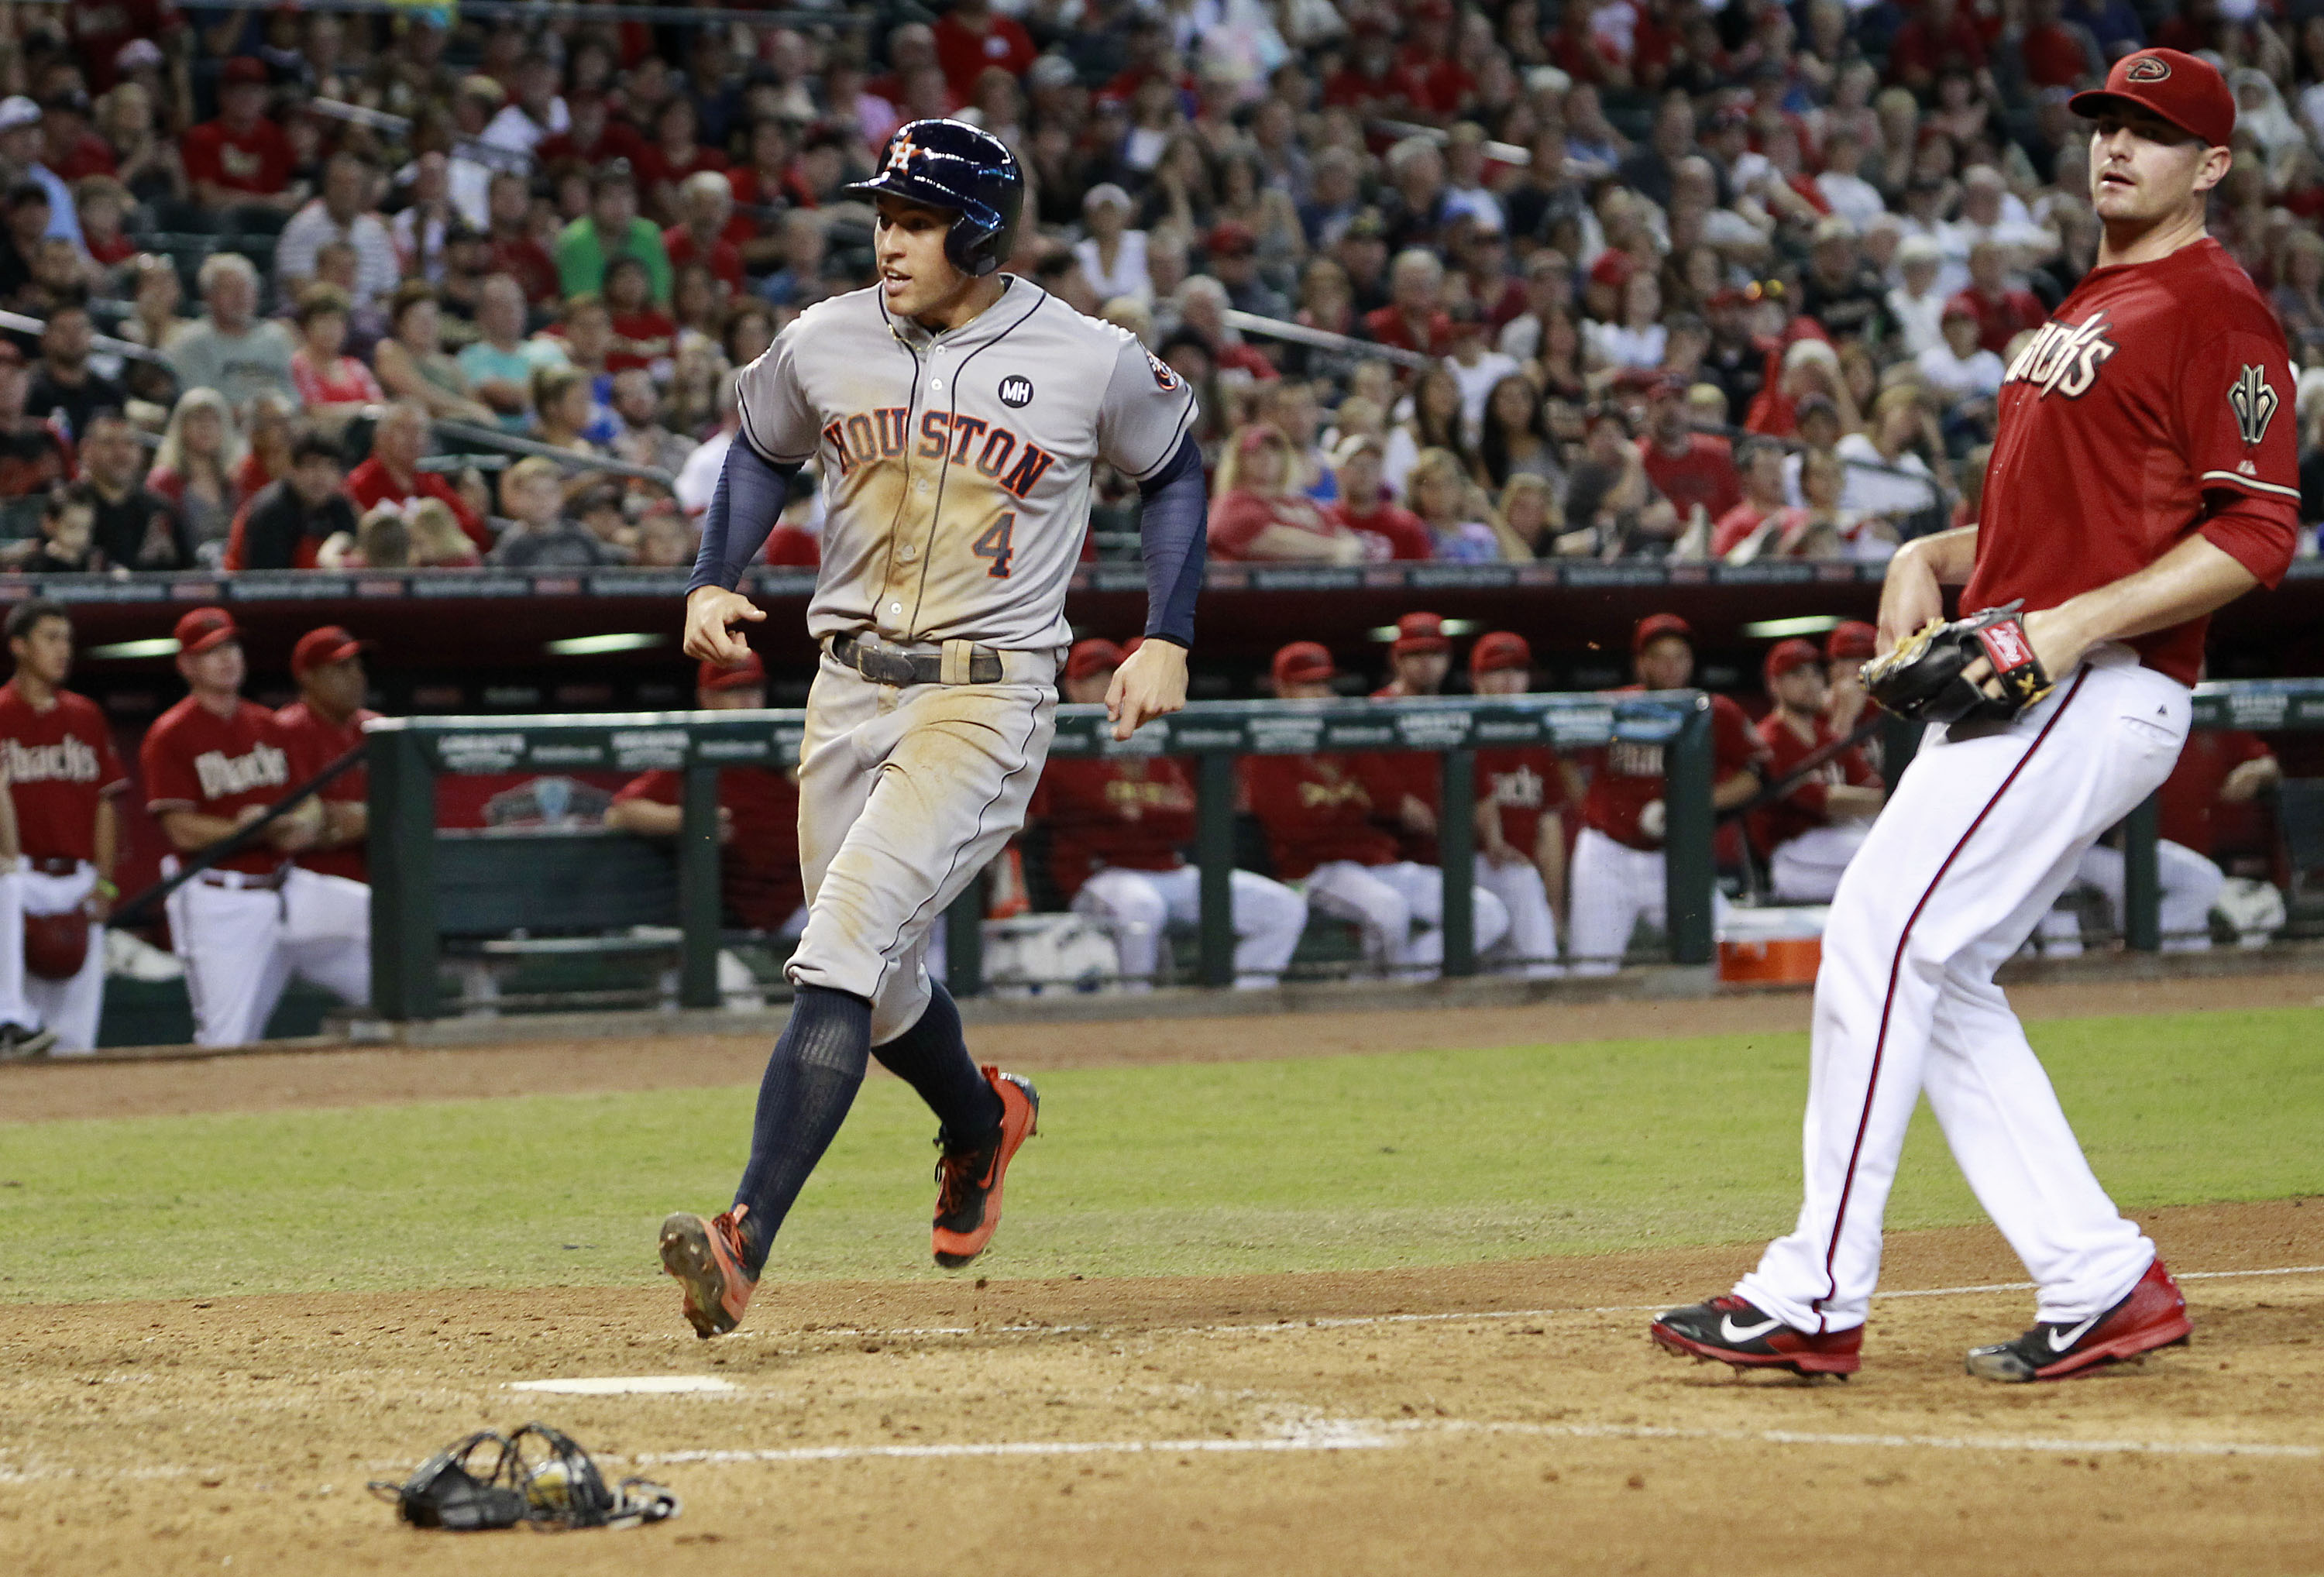 Houston Astros's George Springer (4) crosses the plate to score the game tying run on a wild pitch by Arizona Diamondbacks' Daniel Hudson,right, during the seventh inning of a baseball game, Sunday, Oct. 4, 2015, in Phoenix. (AP Photo/Ralph Freso)